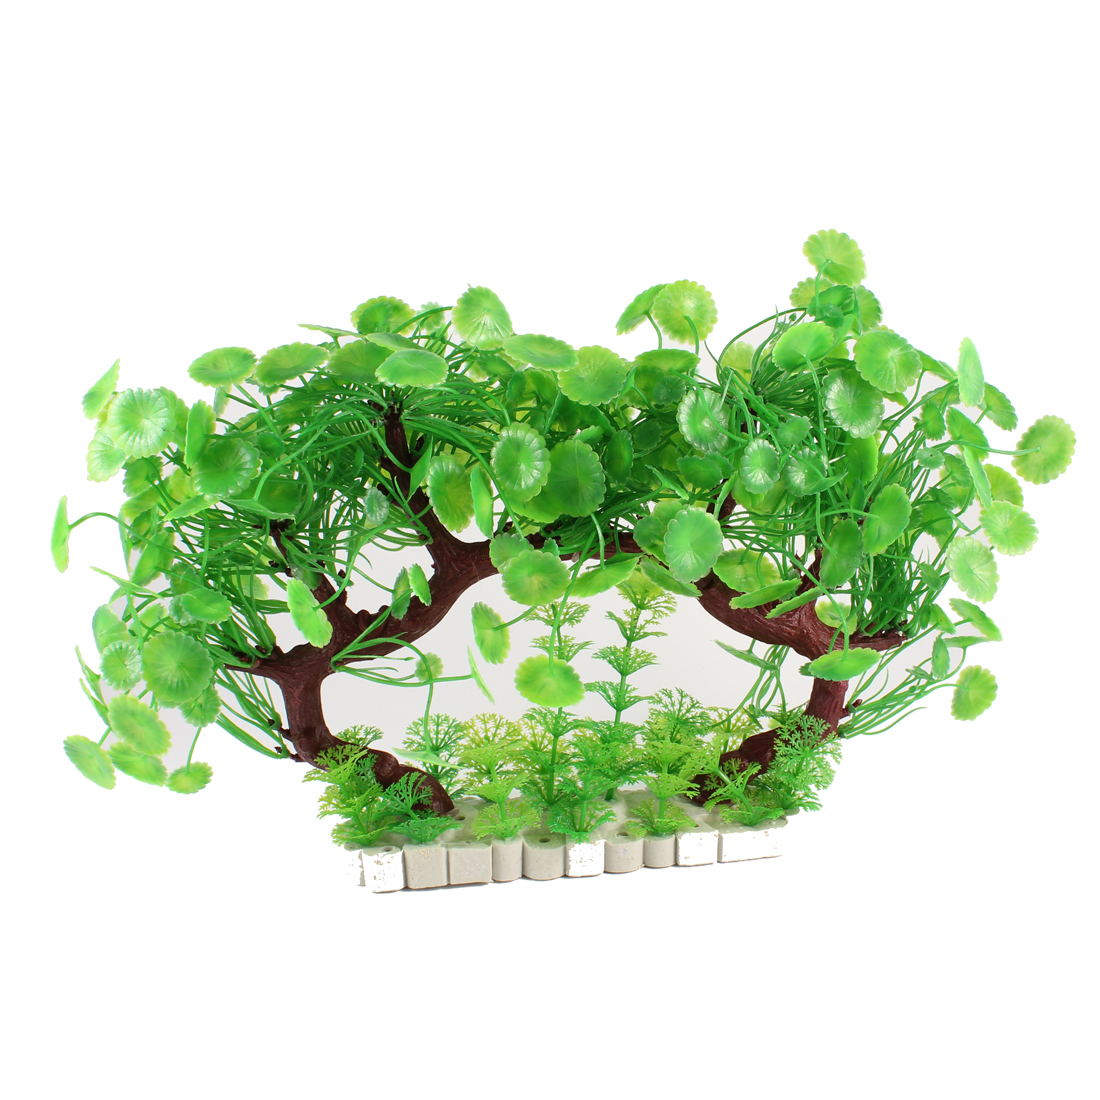 "Aquarium Fish Tank Aquascape Manmade Water Tree Grass Decoration Green 8.6"" Height"